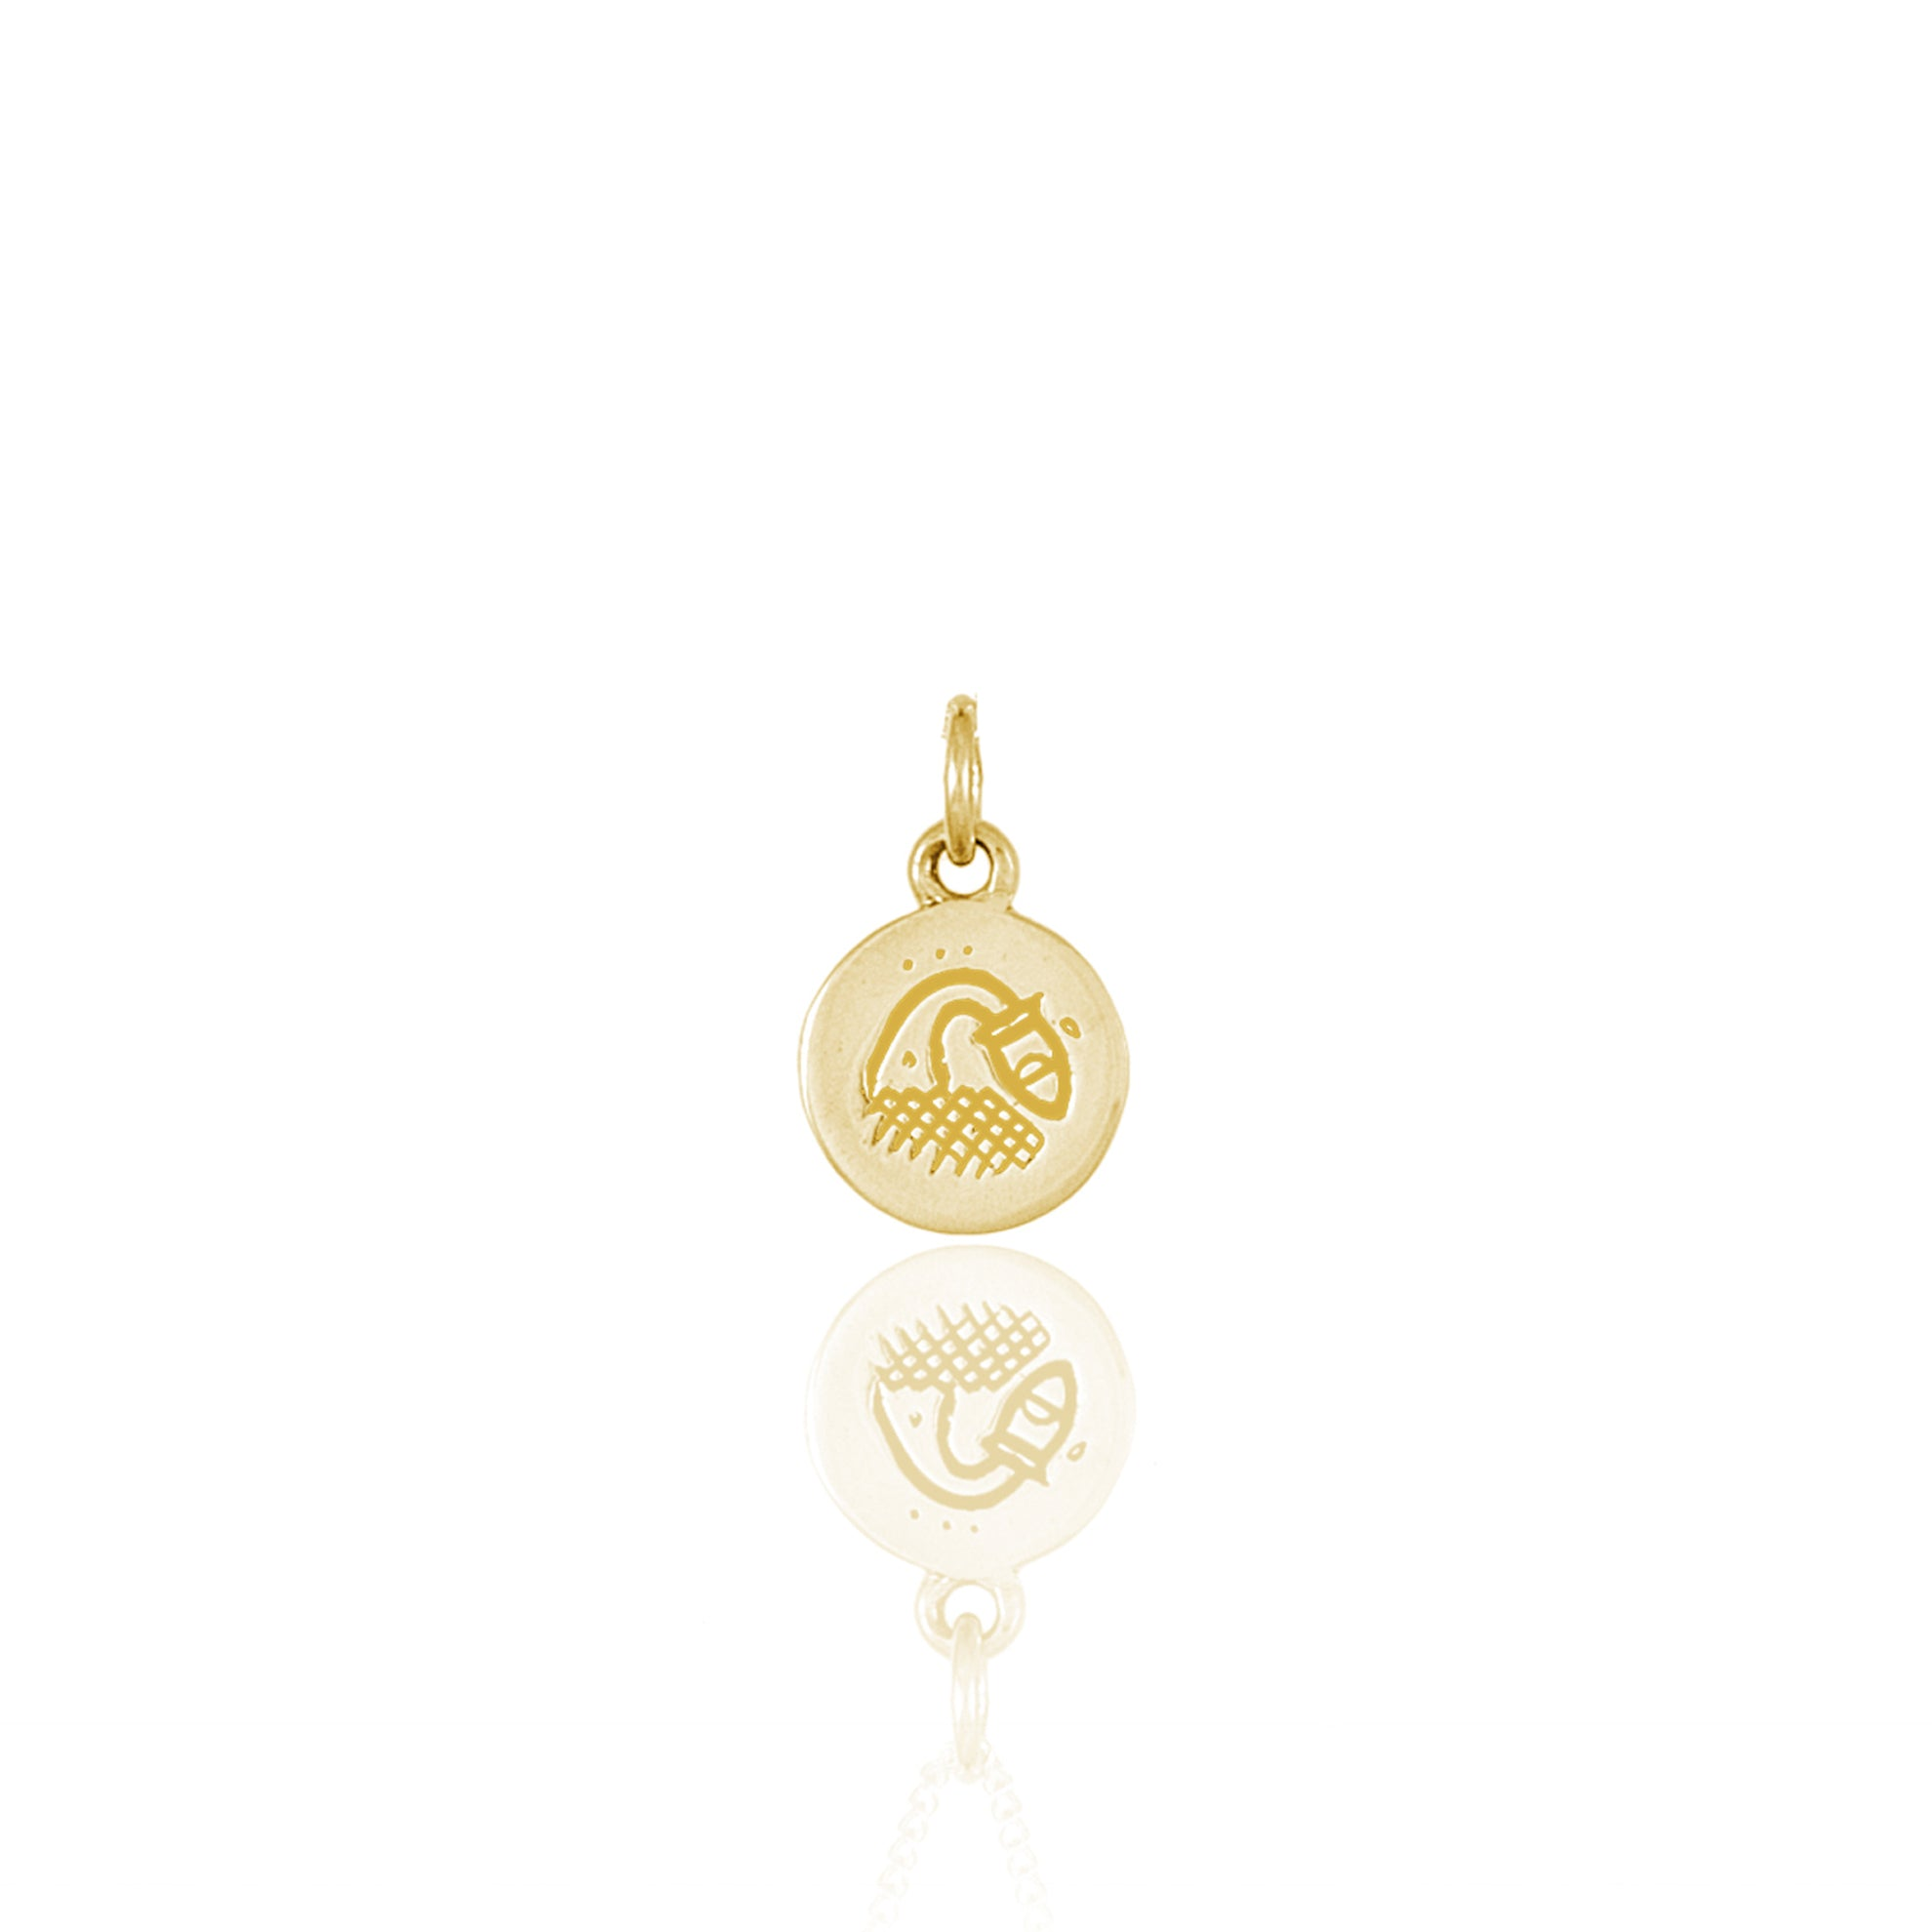 Aquarius Mini Zodiac Charm - Gold